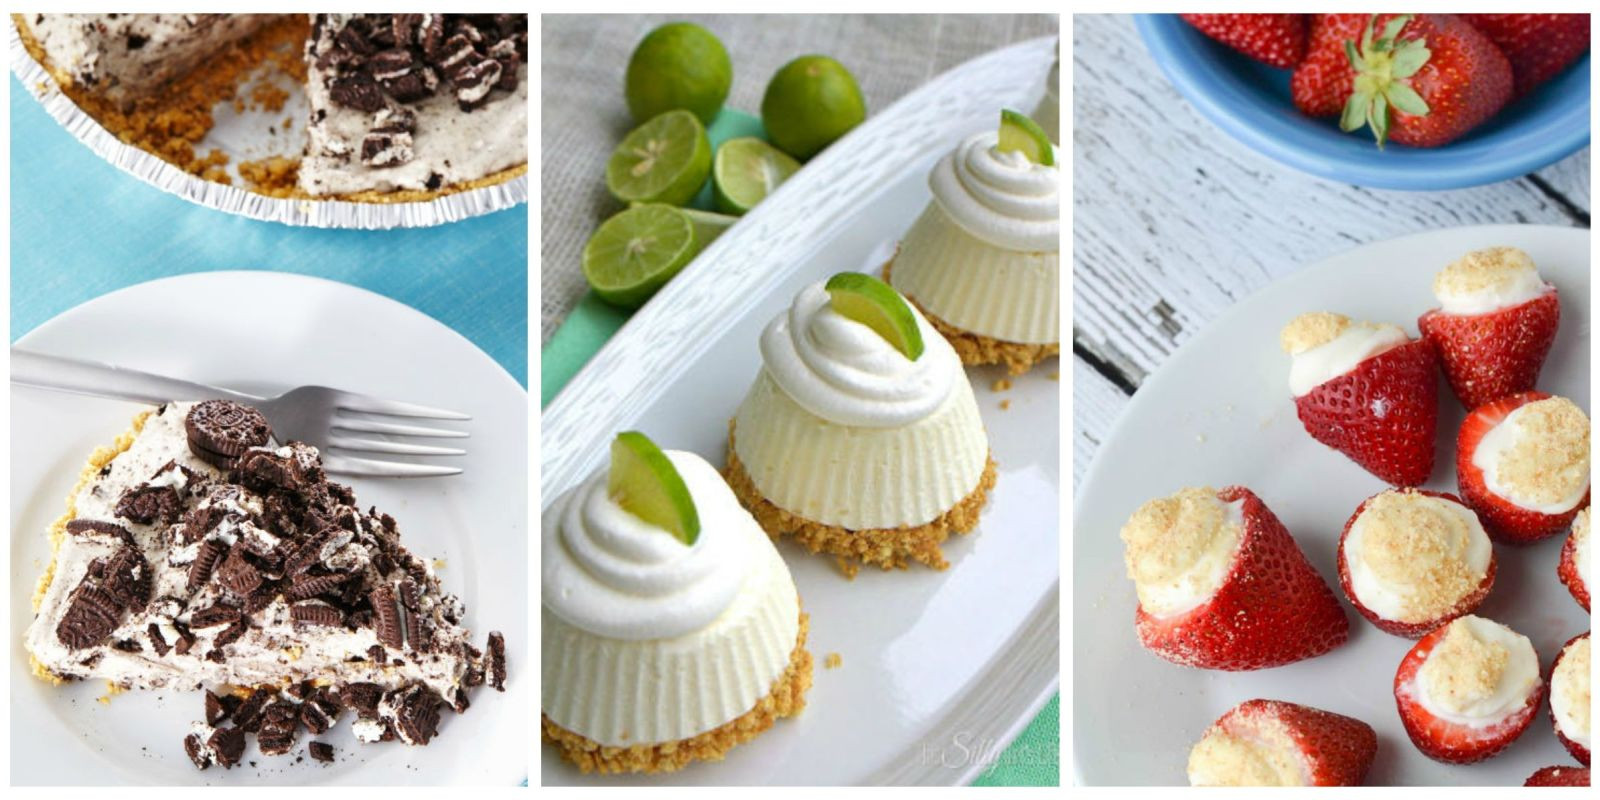 Good Summer Desserts  57 Easy Summer Desserts Best Recipes for Frozen Summer